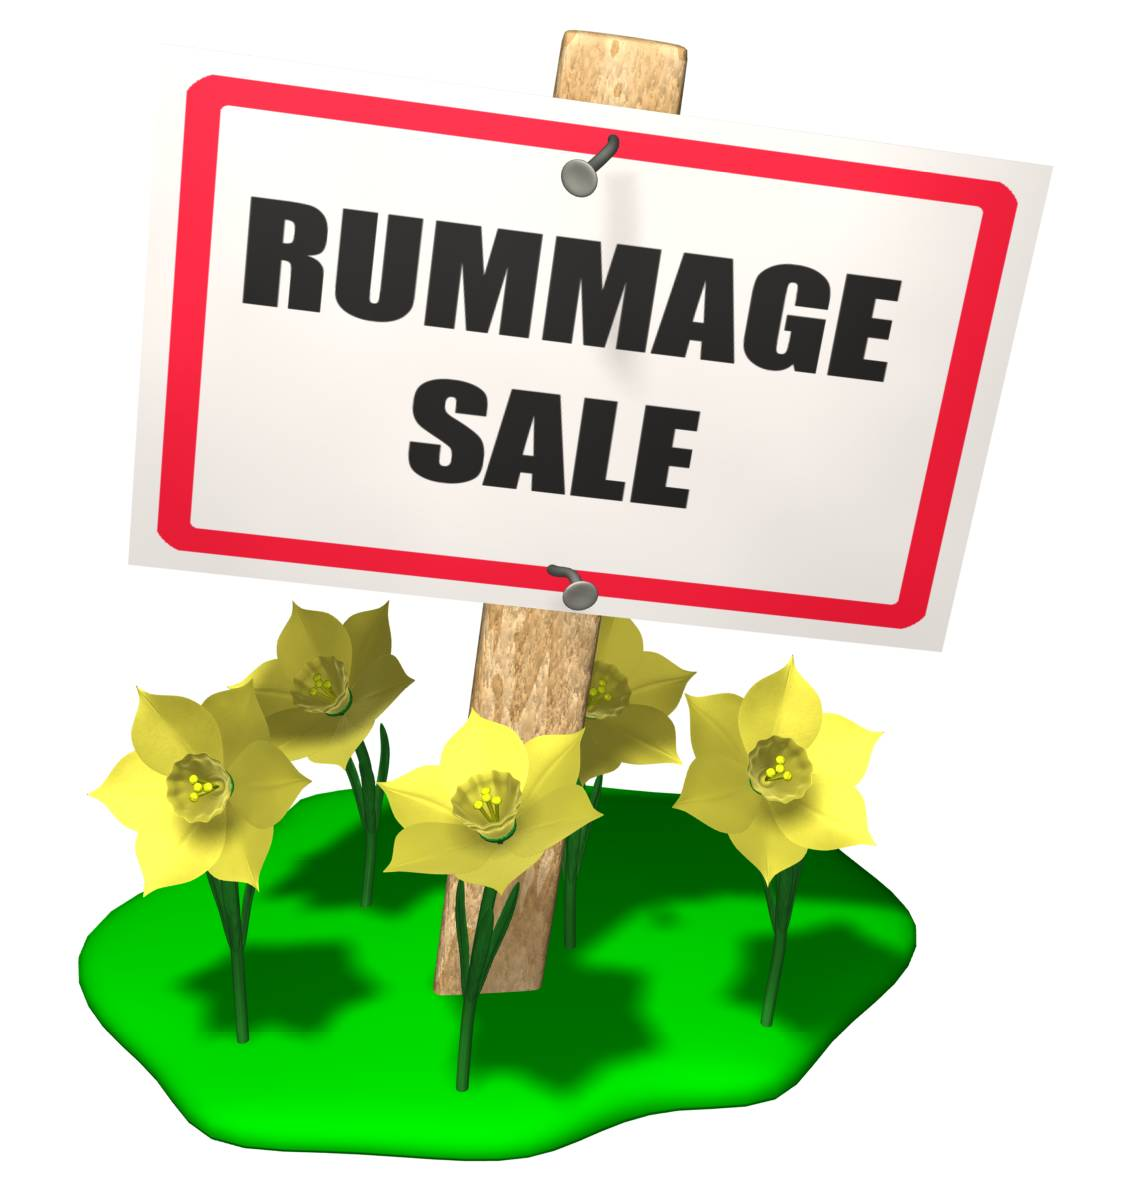 Free Rummage Sale Clipart, Download Free Clip Art, Free Clip Art on.